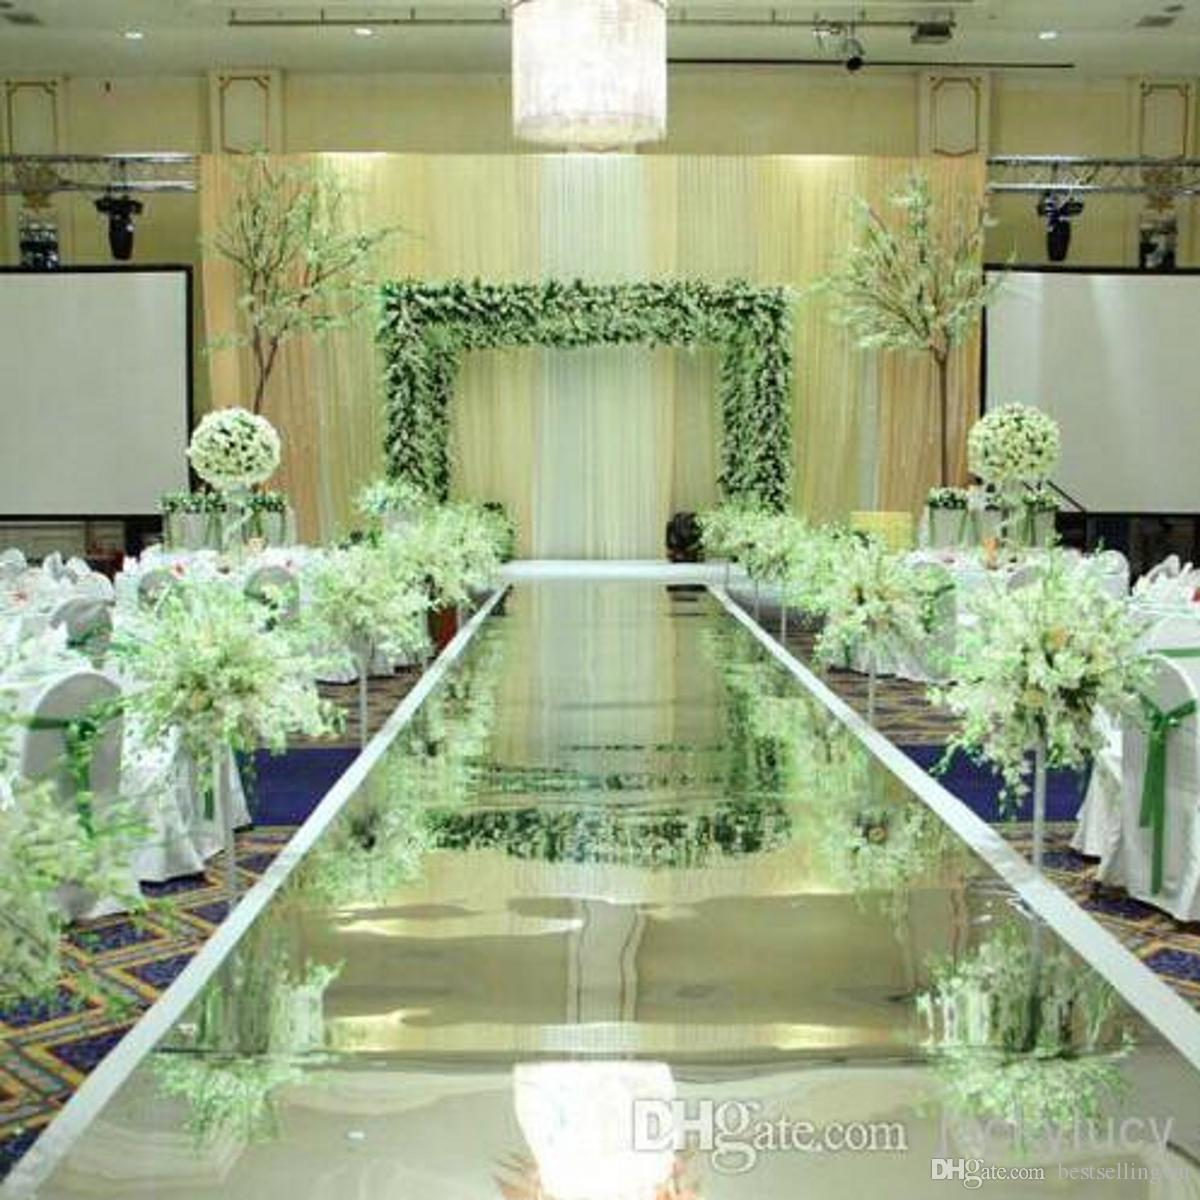 12 m wide luxury wedding centerpieces decor mirror carpet aisle 12 m wide luxury wedding centerpieces decor mirror carpet aisle runner for party backdrop decorations supplies 2015 new arrival mirror carpet wedding junglespirit Images